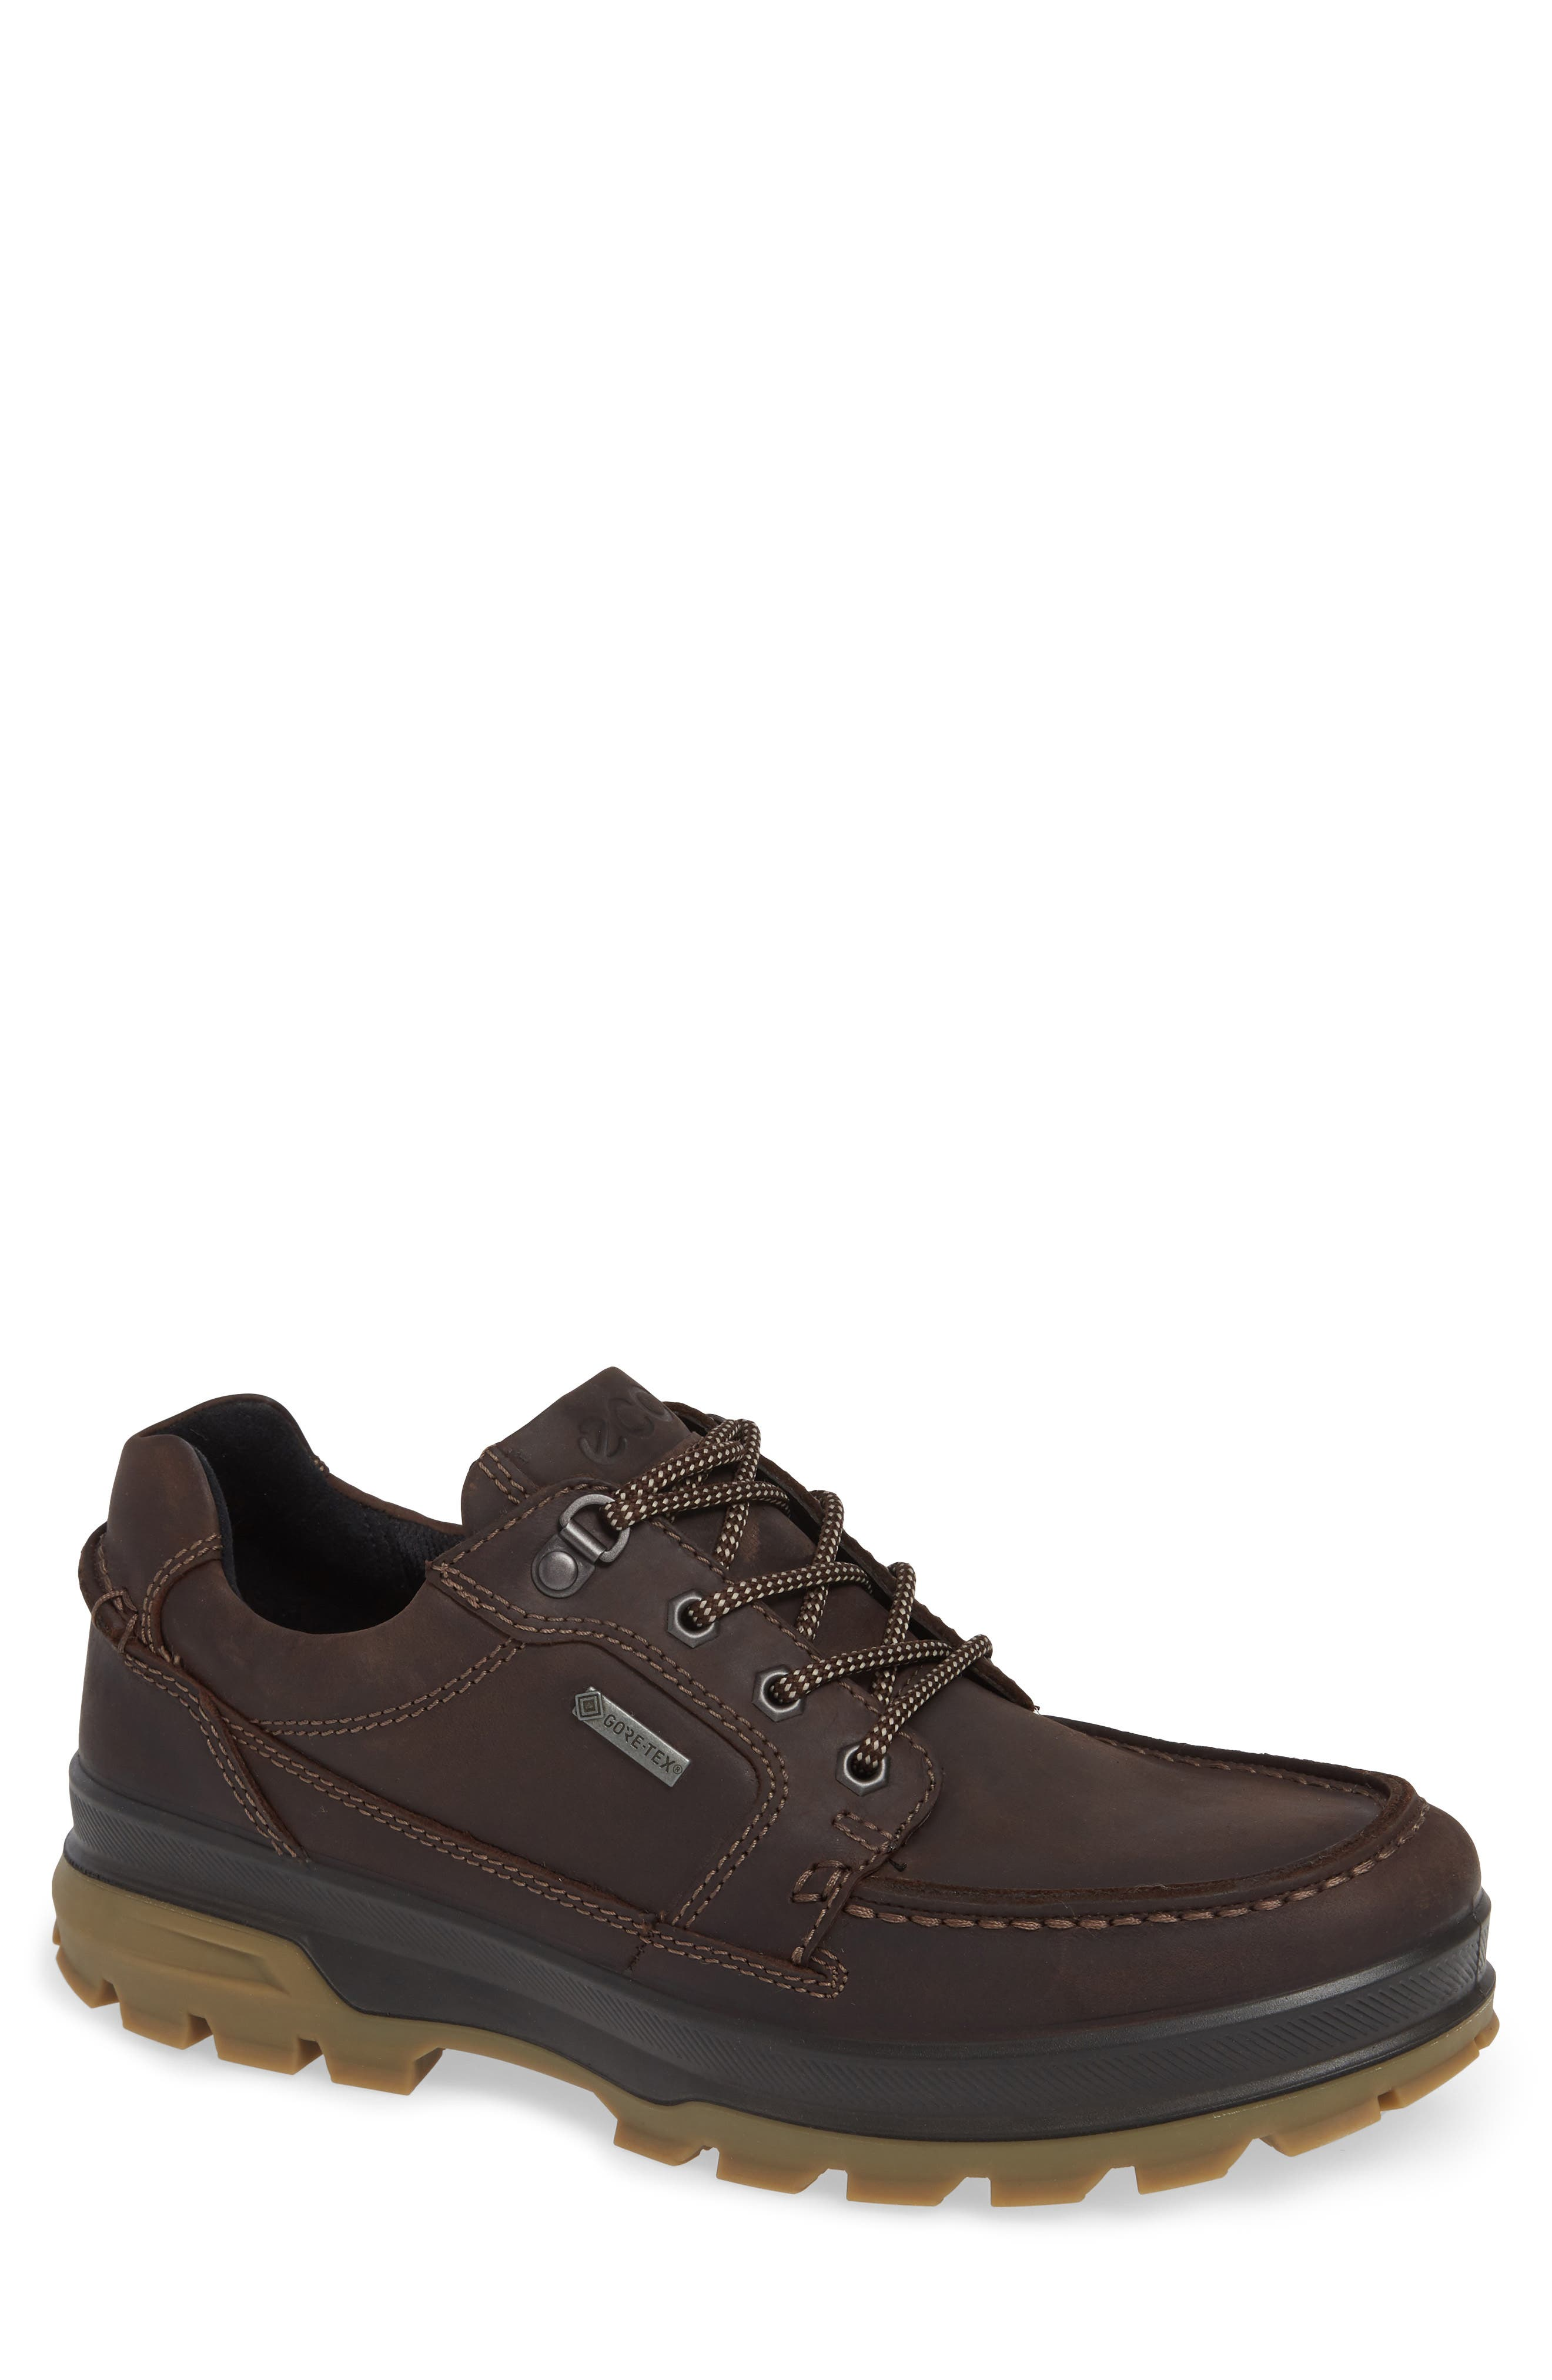 Ecco Rugged Track Low Gore-Tex Oxford - Brown